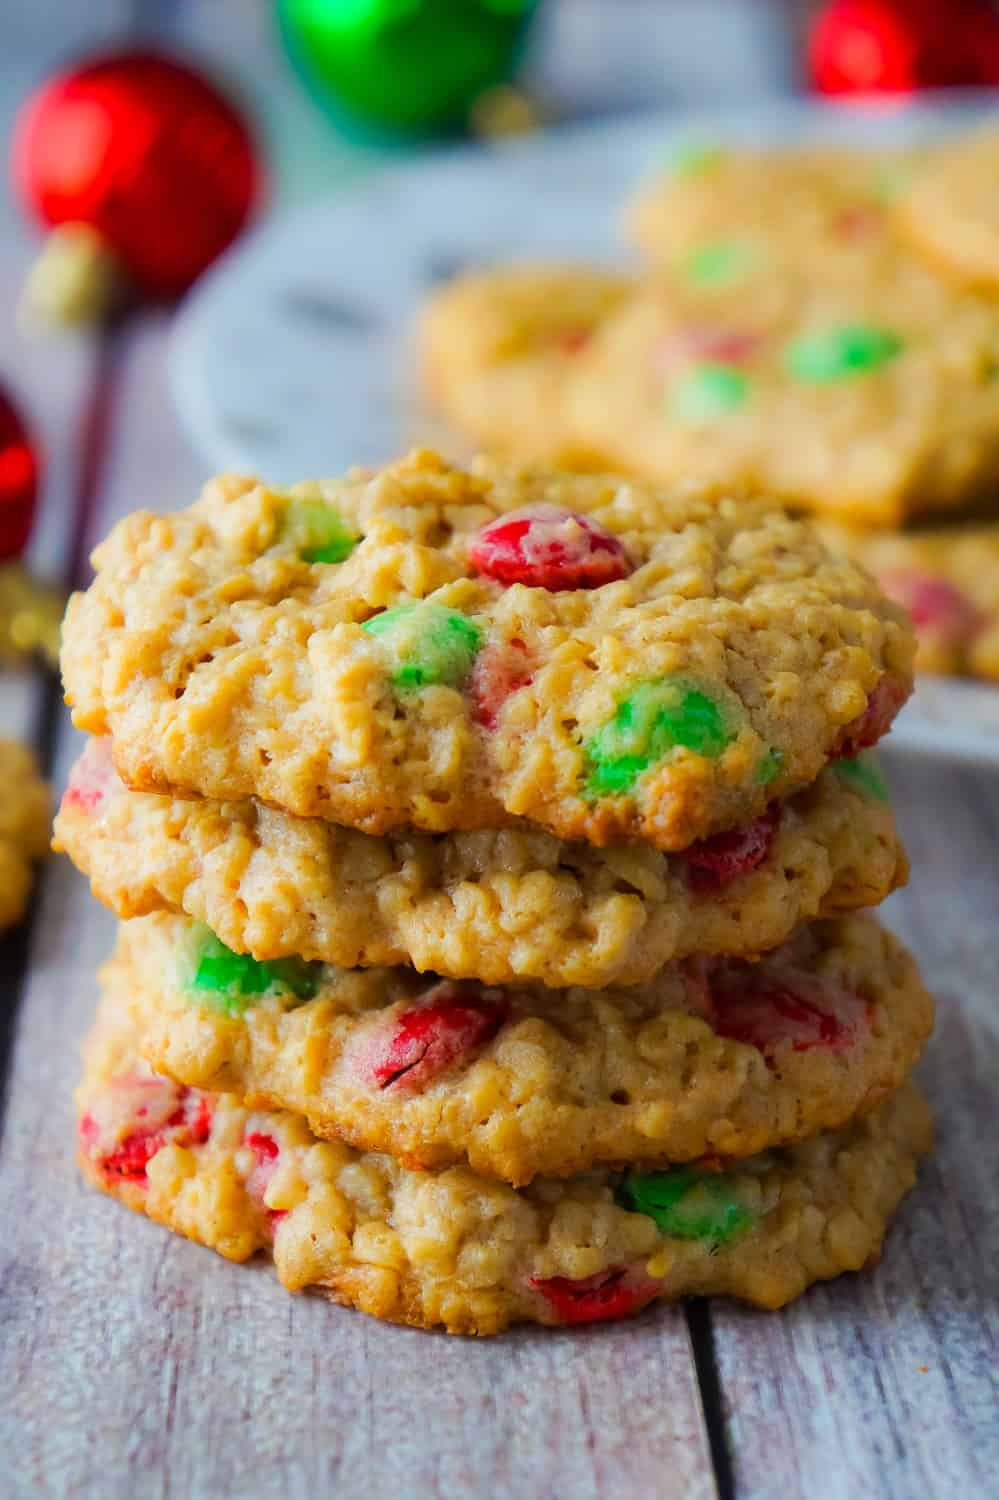 Christmas Monster Cookies are delicious oatmeal peanut butter cookies loaded with red and green M&Ms. These flourless oatmeal cookies would be the perfect addition to your Christmas baking.